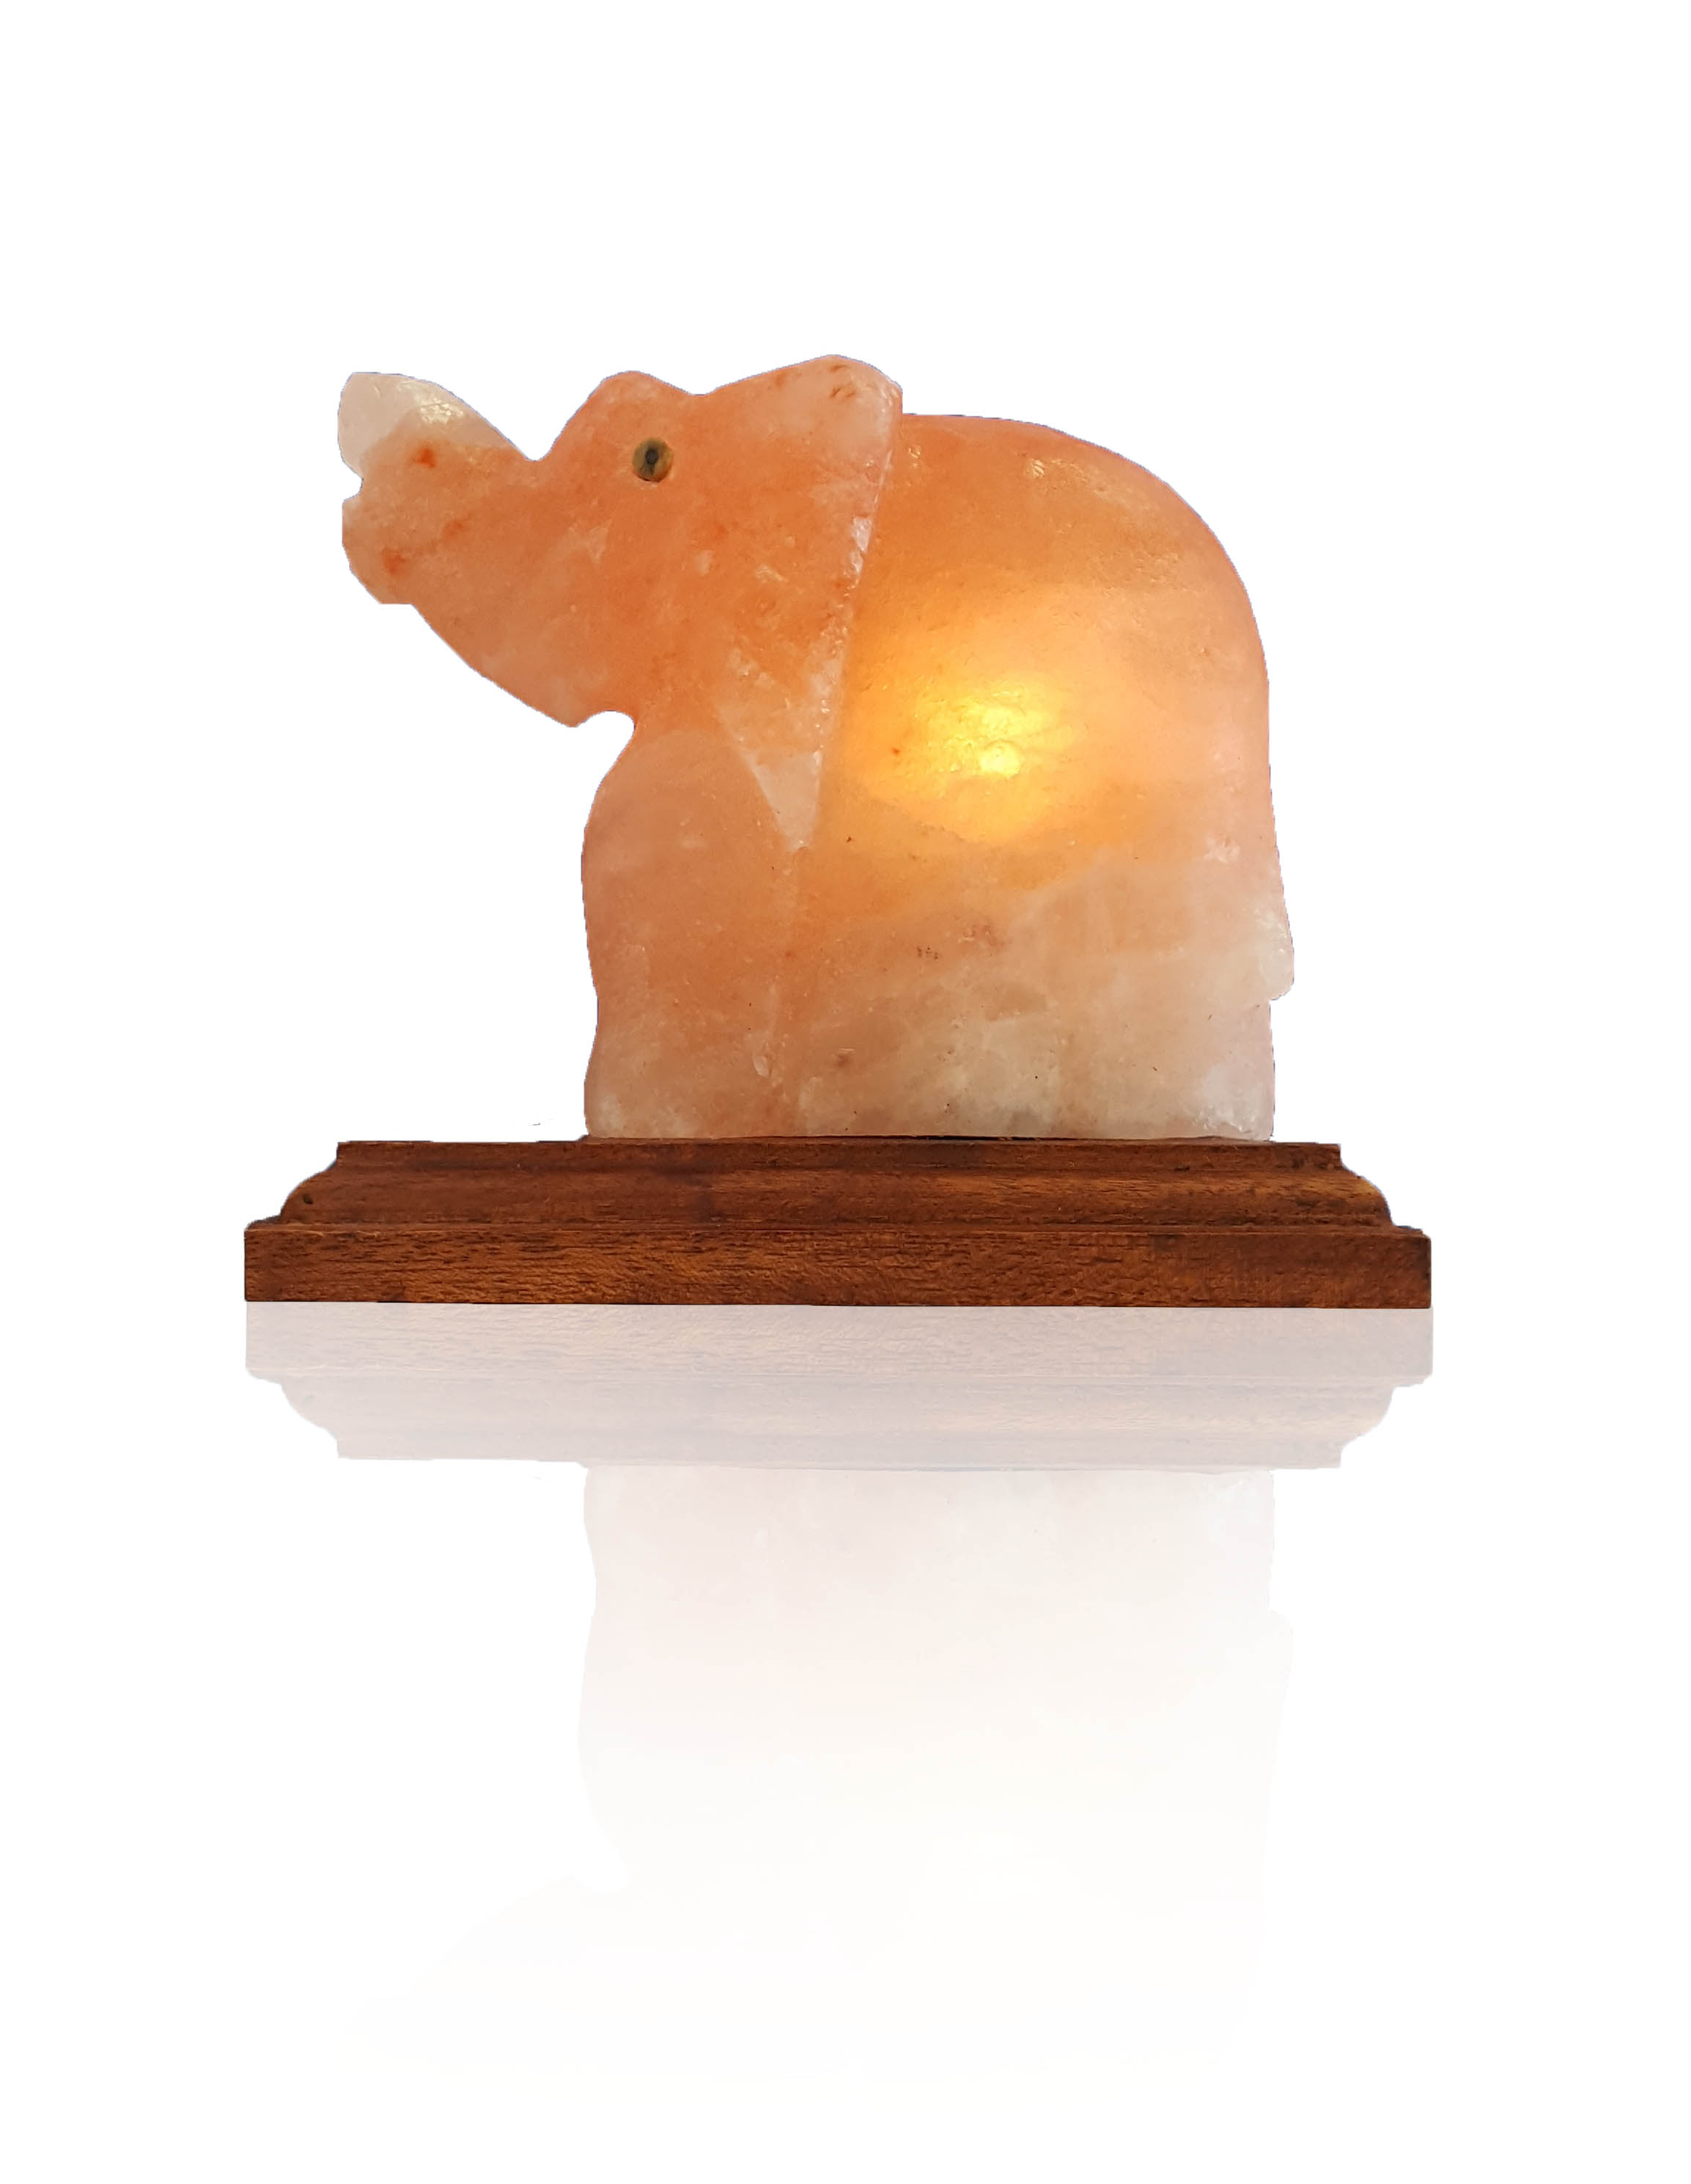 nursery base light baby shade a fresh elephant or cute way is lamp to for